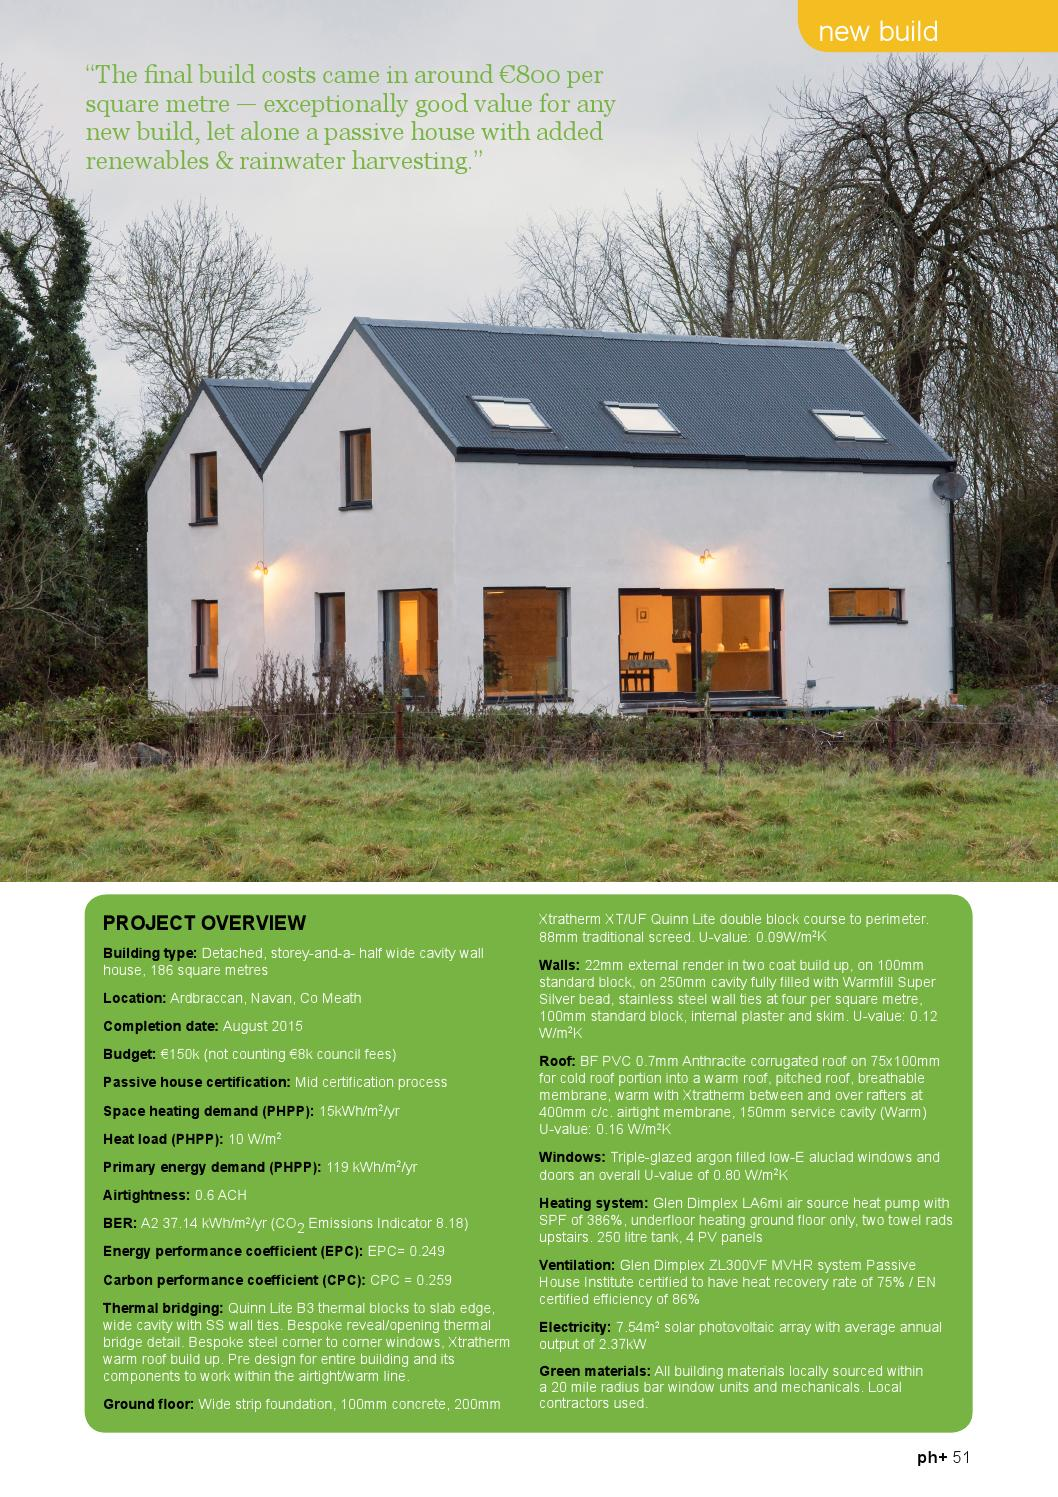 Passive house plus issue 14 (uk edition) by Passive House Plus